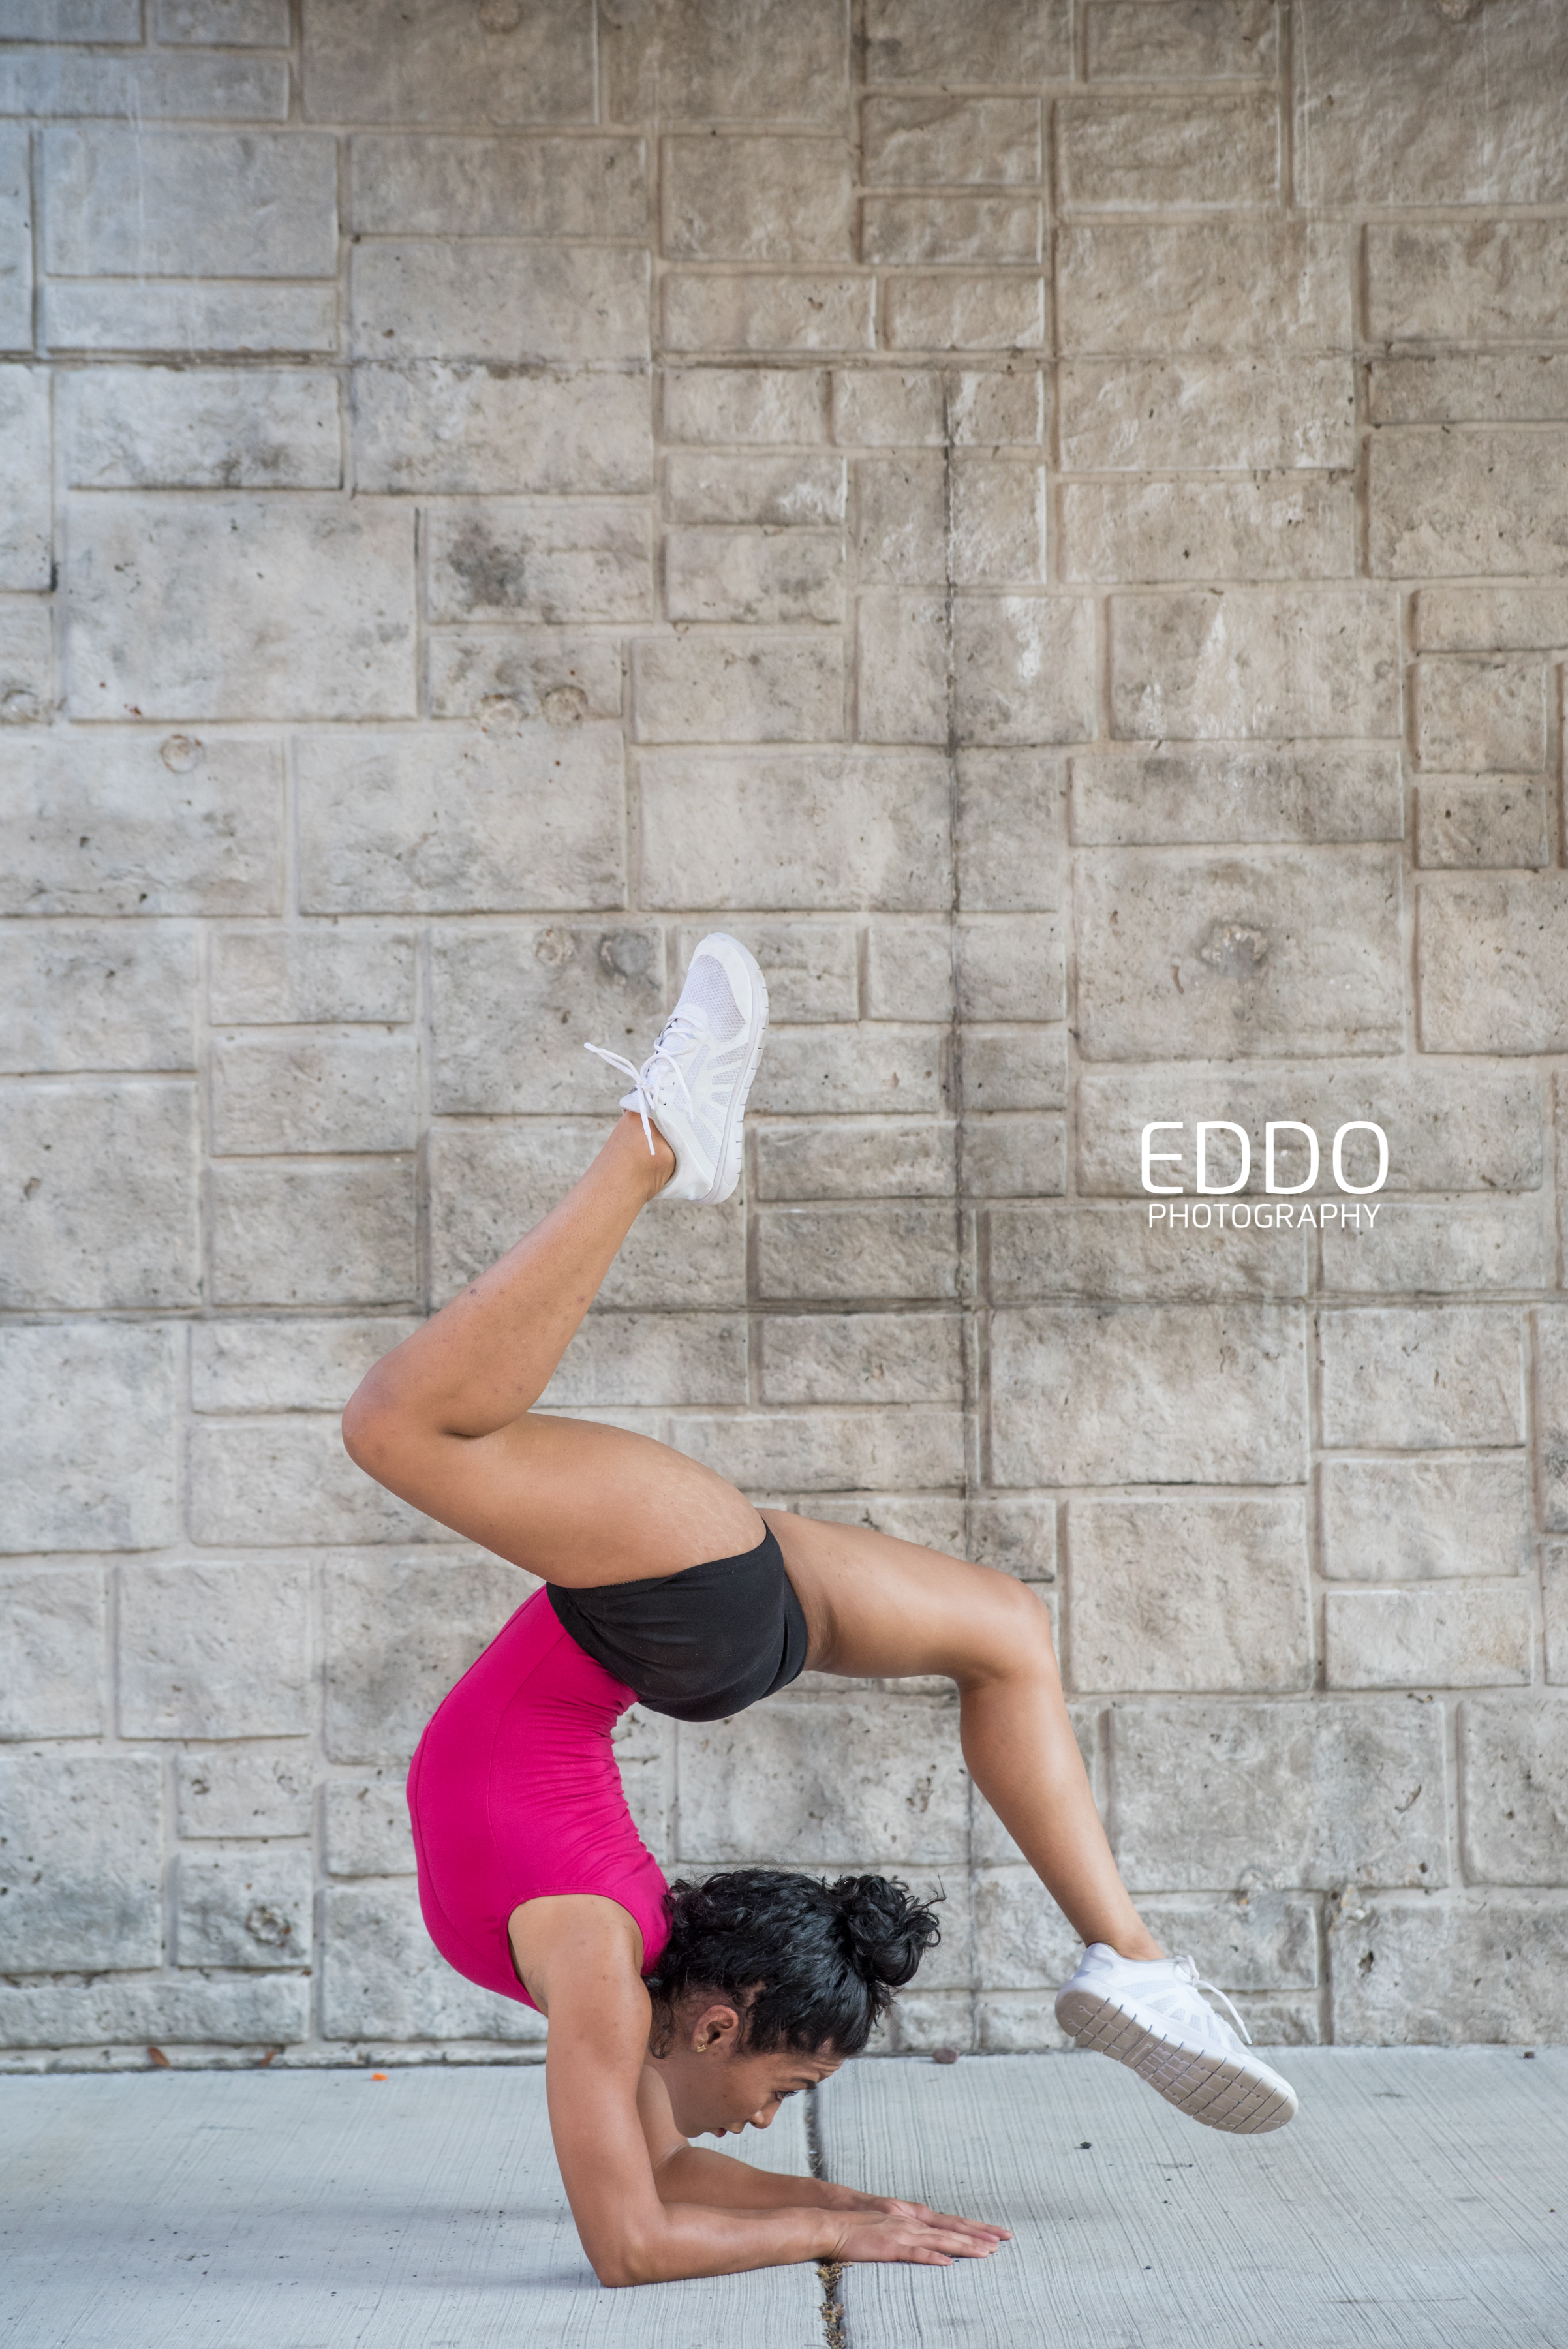 Eddo Photography